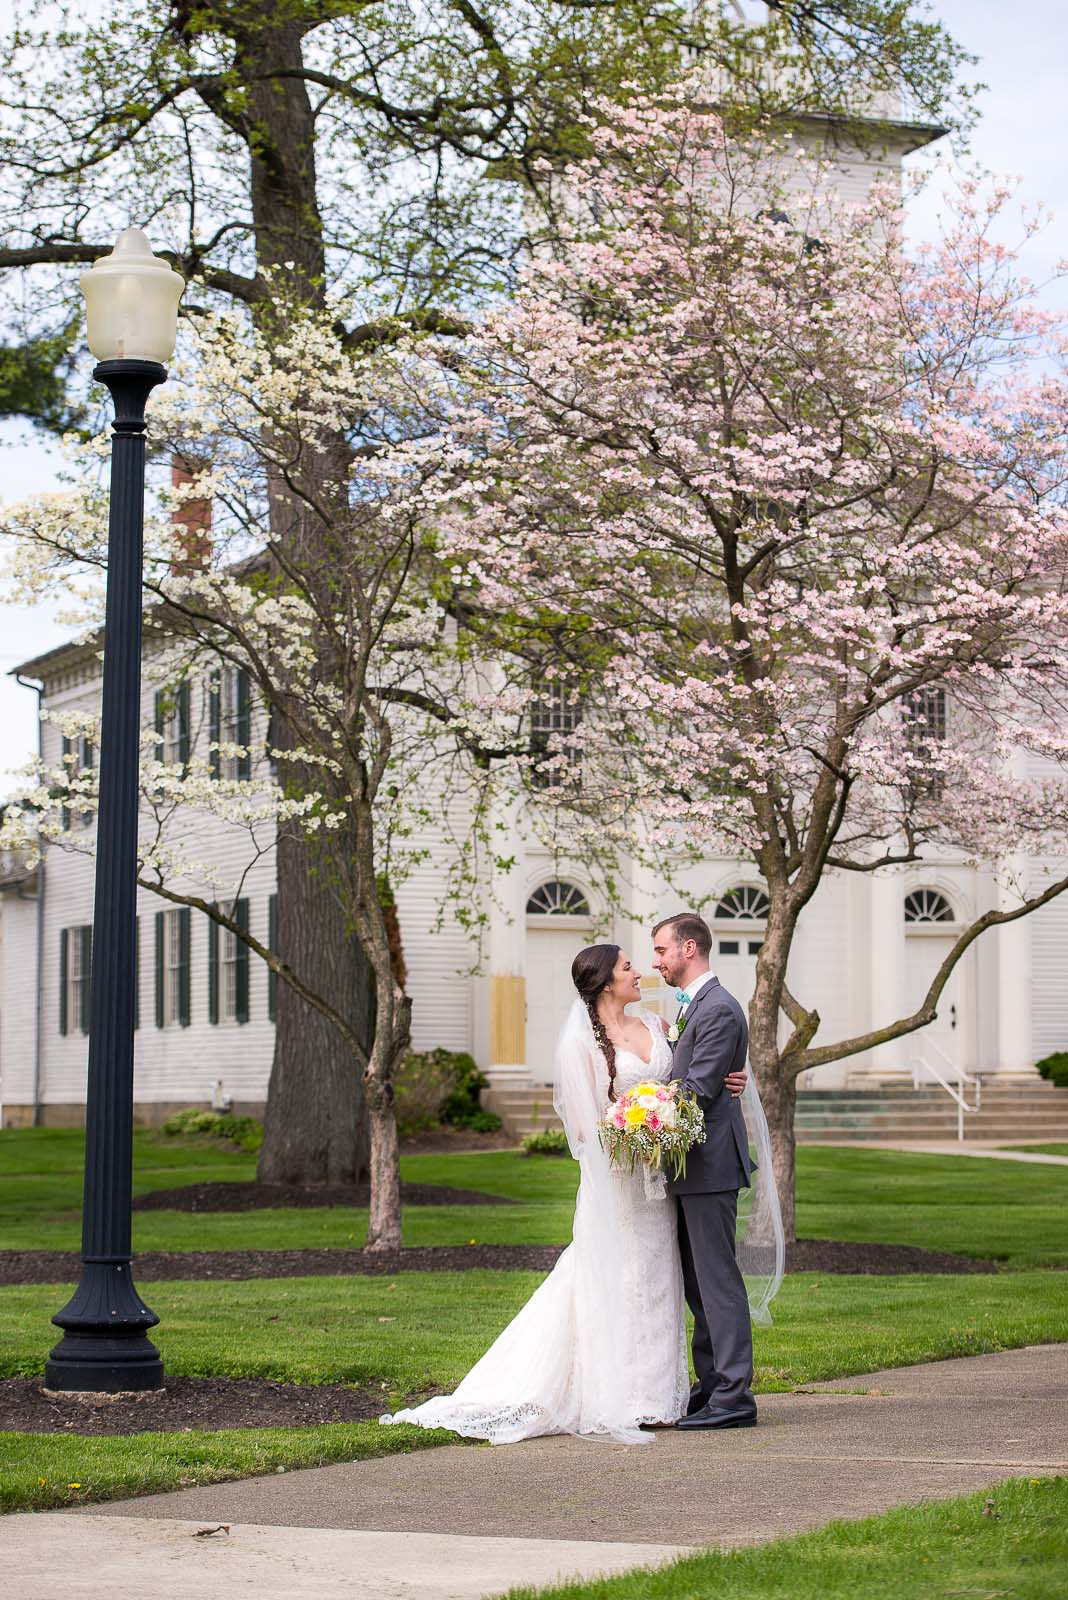 Eric_and_Christy_Photography_Blog_Katie_Travis_Wedding-55